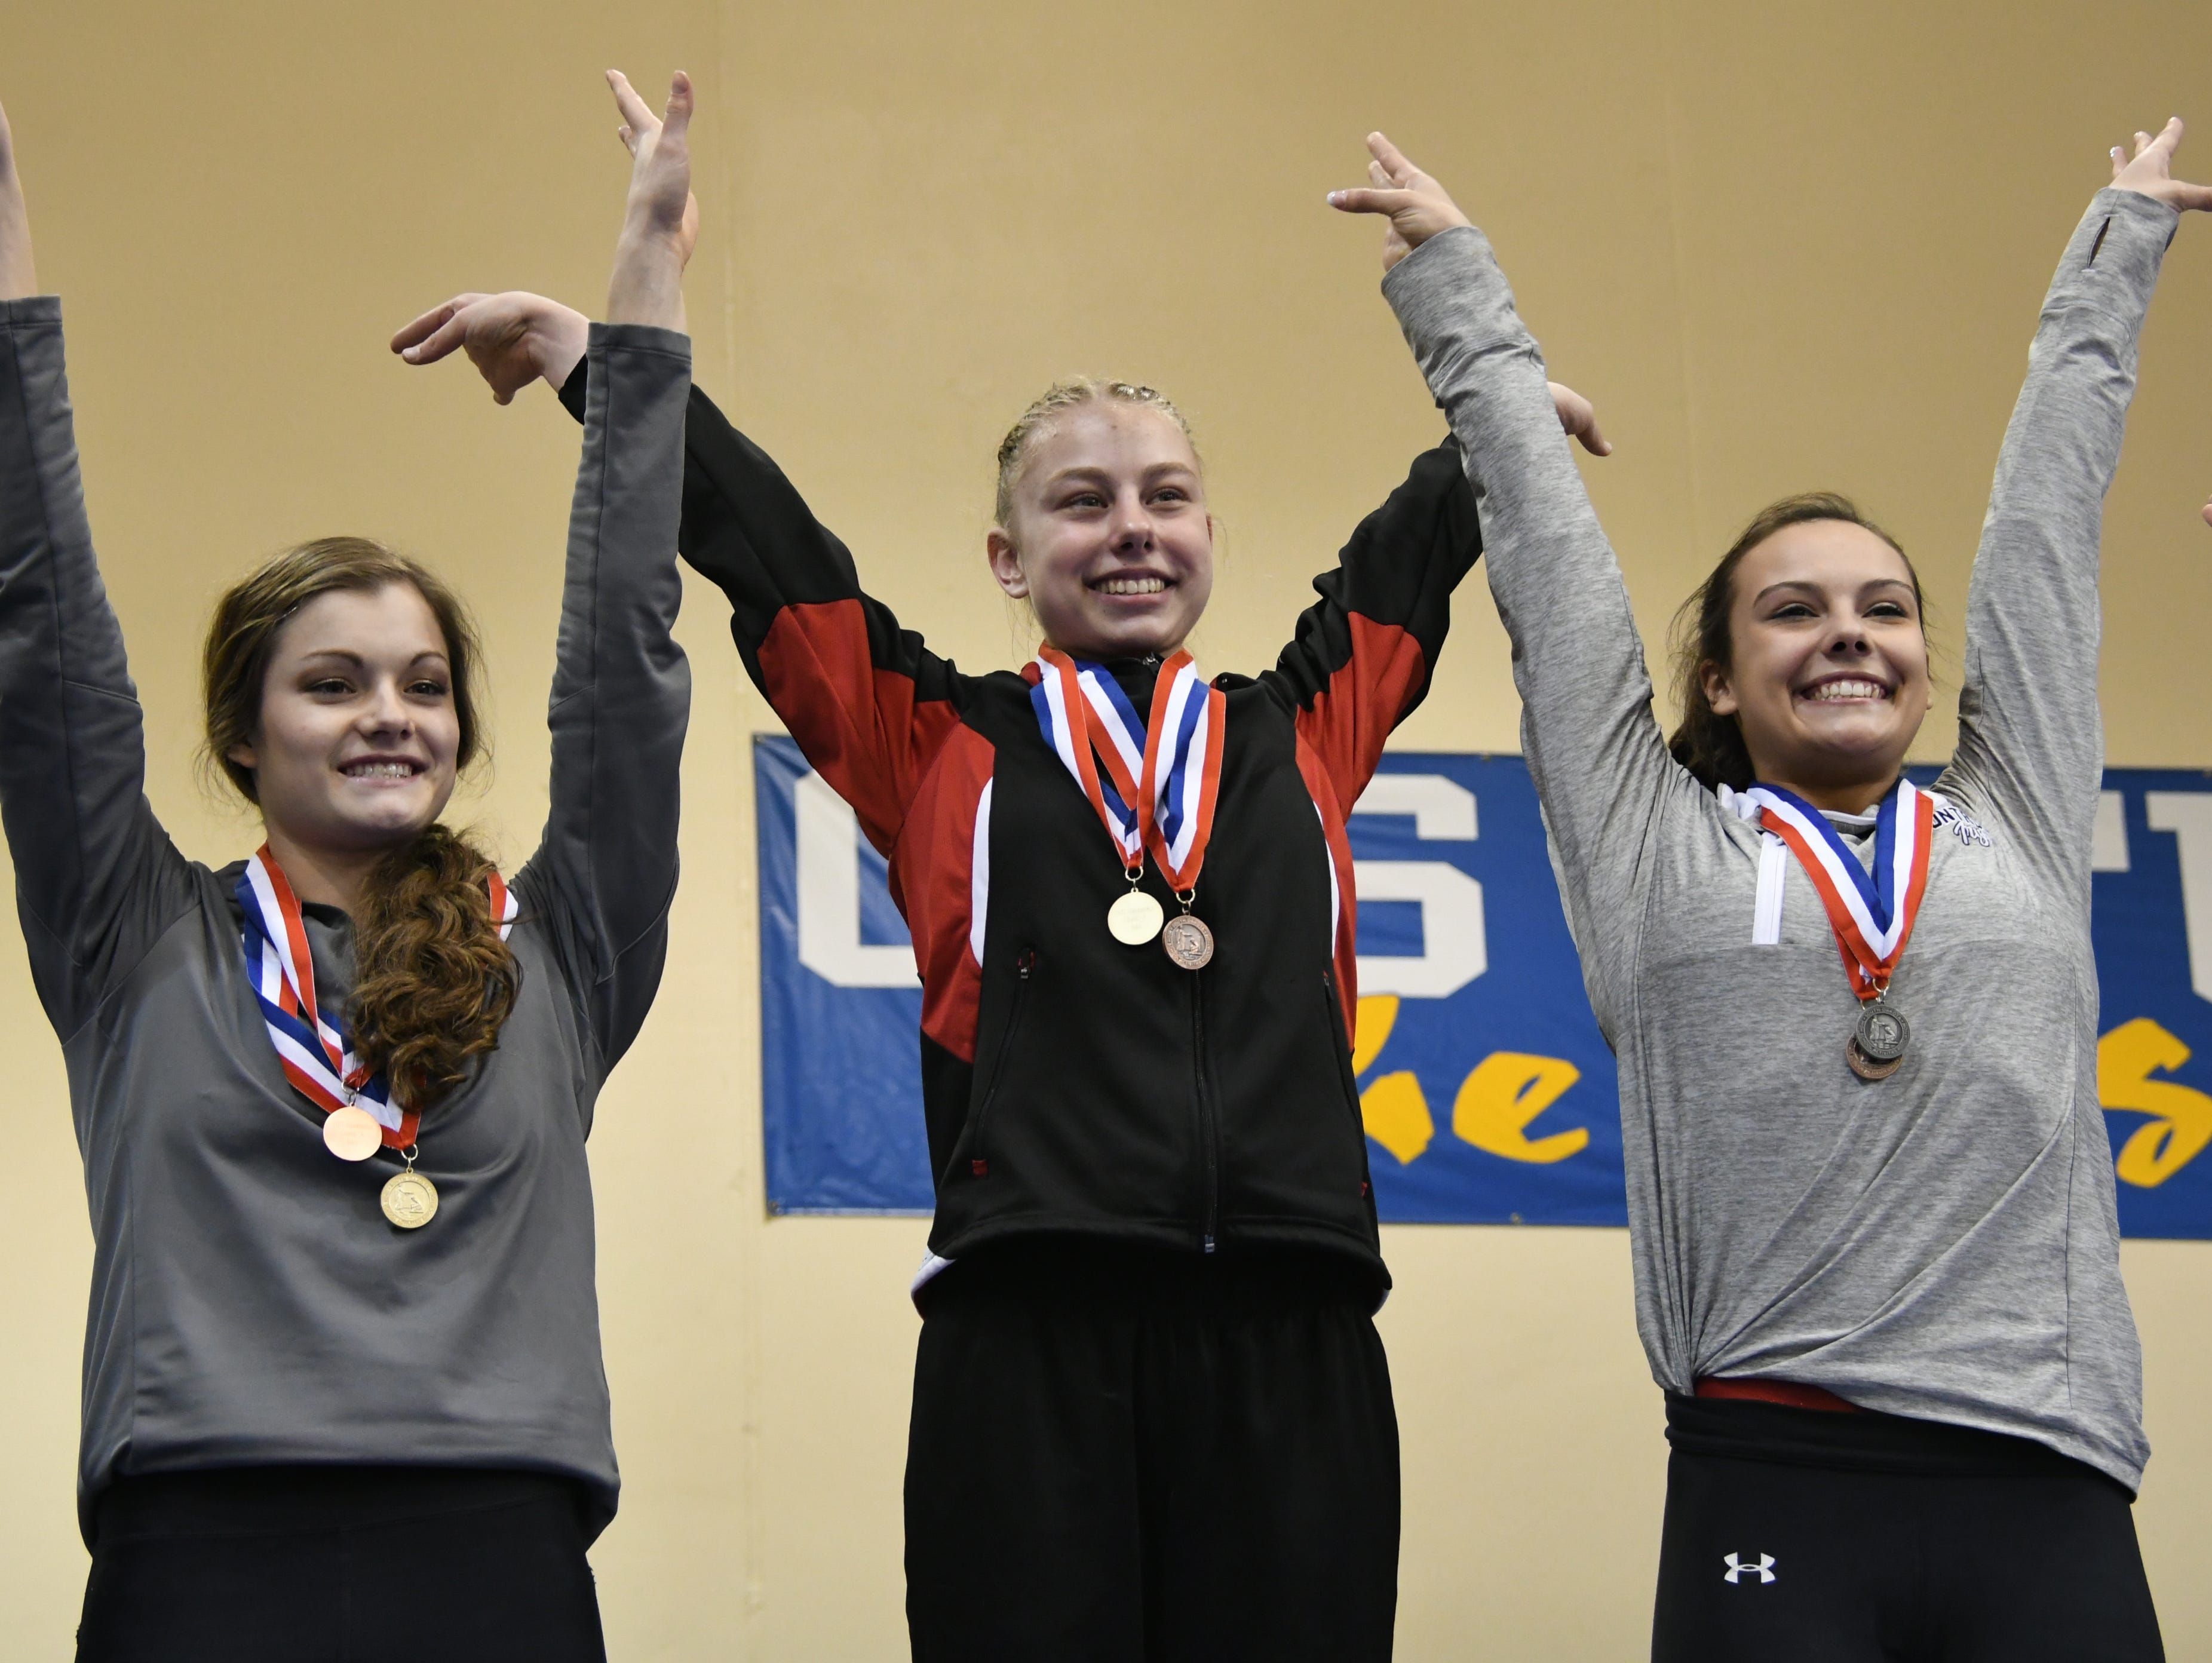 Top three finishers on bars in Class A. From left: Madison's Jenni Giles (3rd), Deuel's Morgan Kwasniewski (1st) and Montrose's Jocelyn Krouse (2nd)